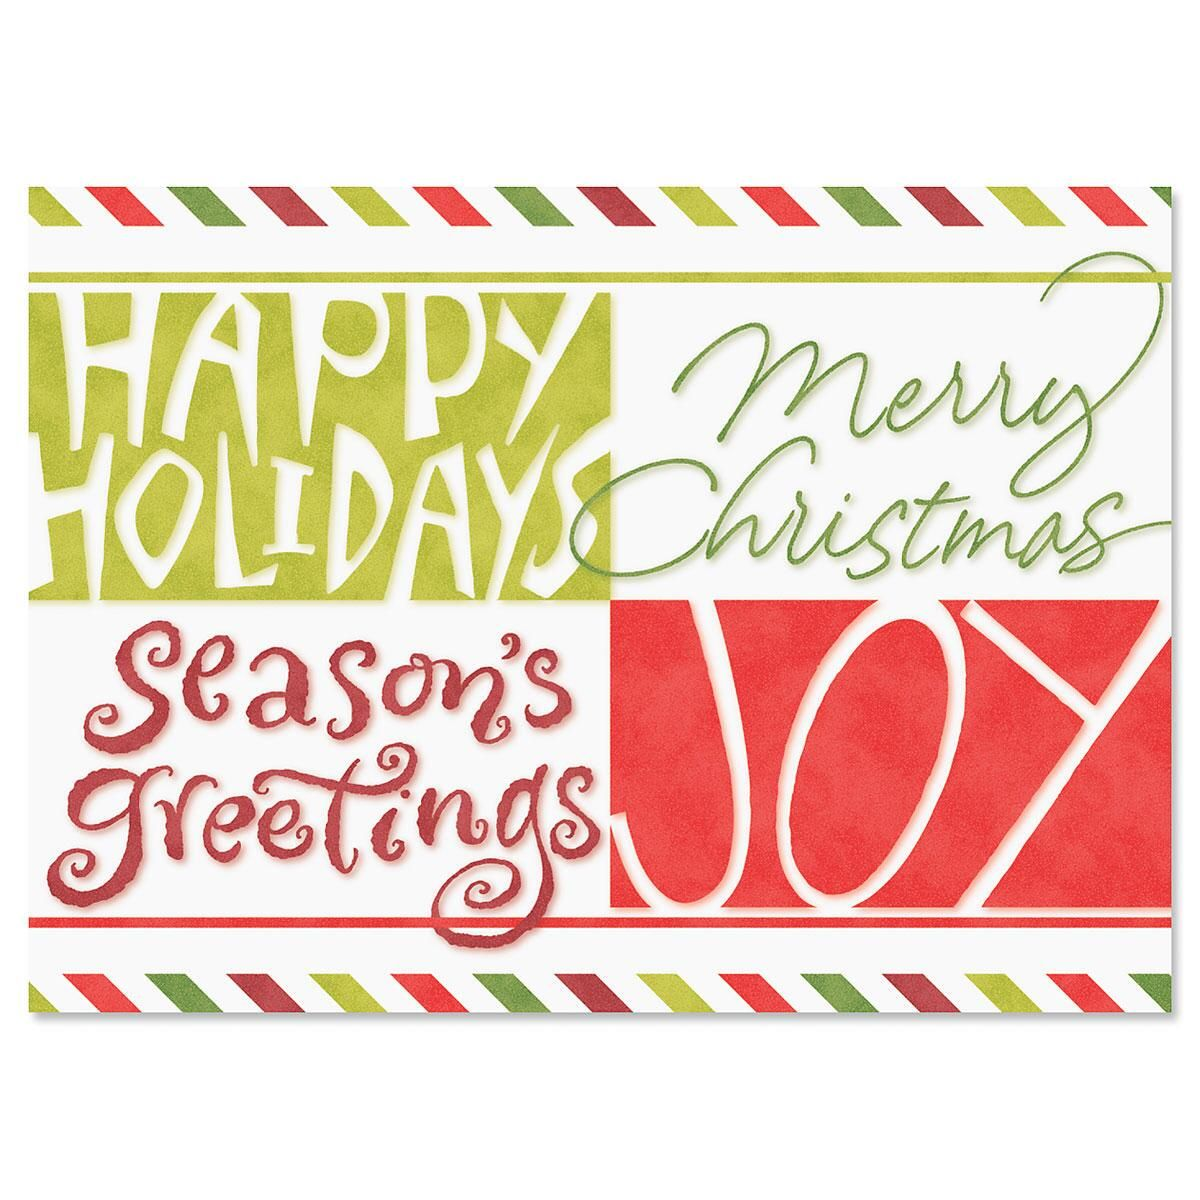 Big Greetings Nonpersonalized Christmas Cards - Set of 72